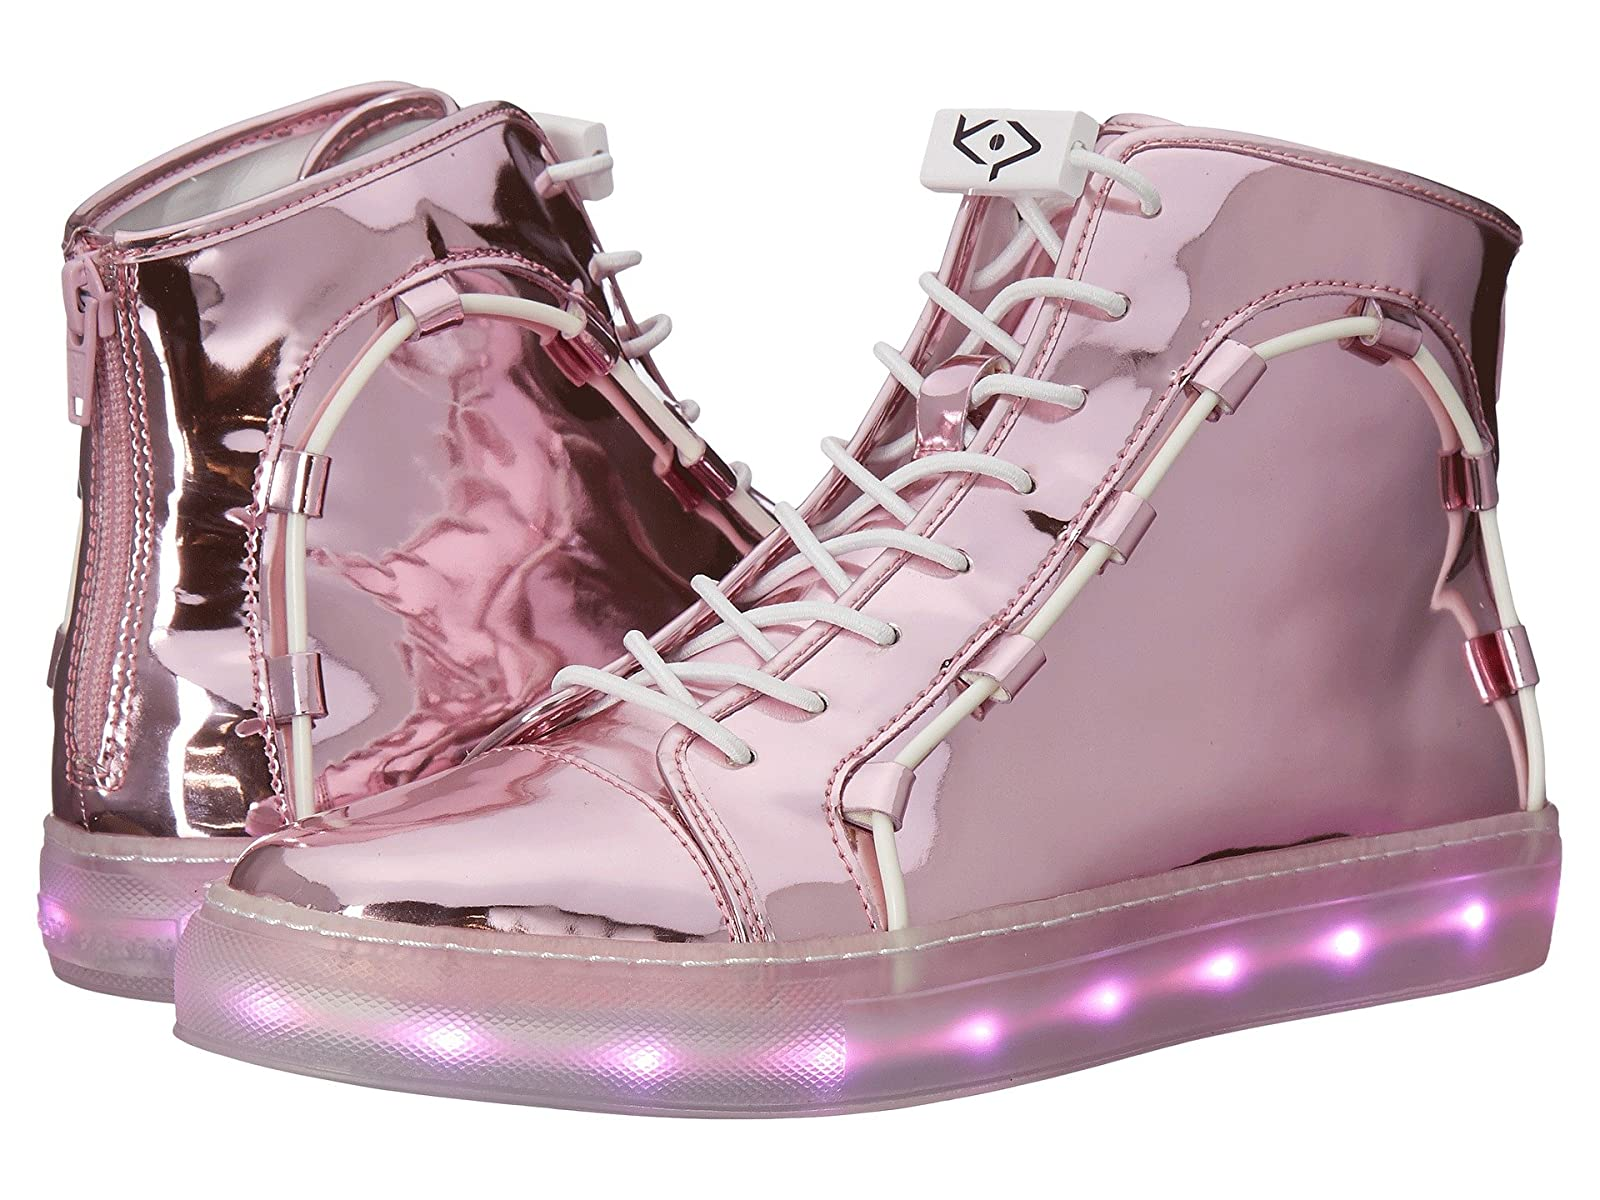 Katy Perry The MirandaCheap and distinctive eye-catching shoes